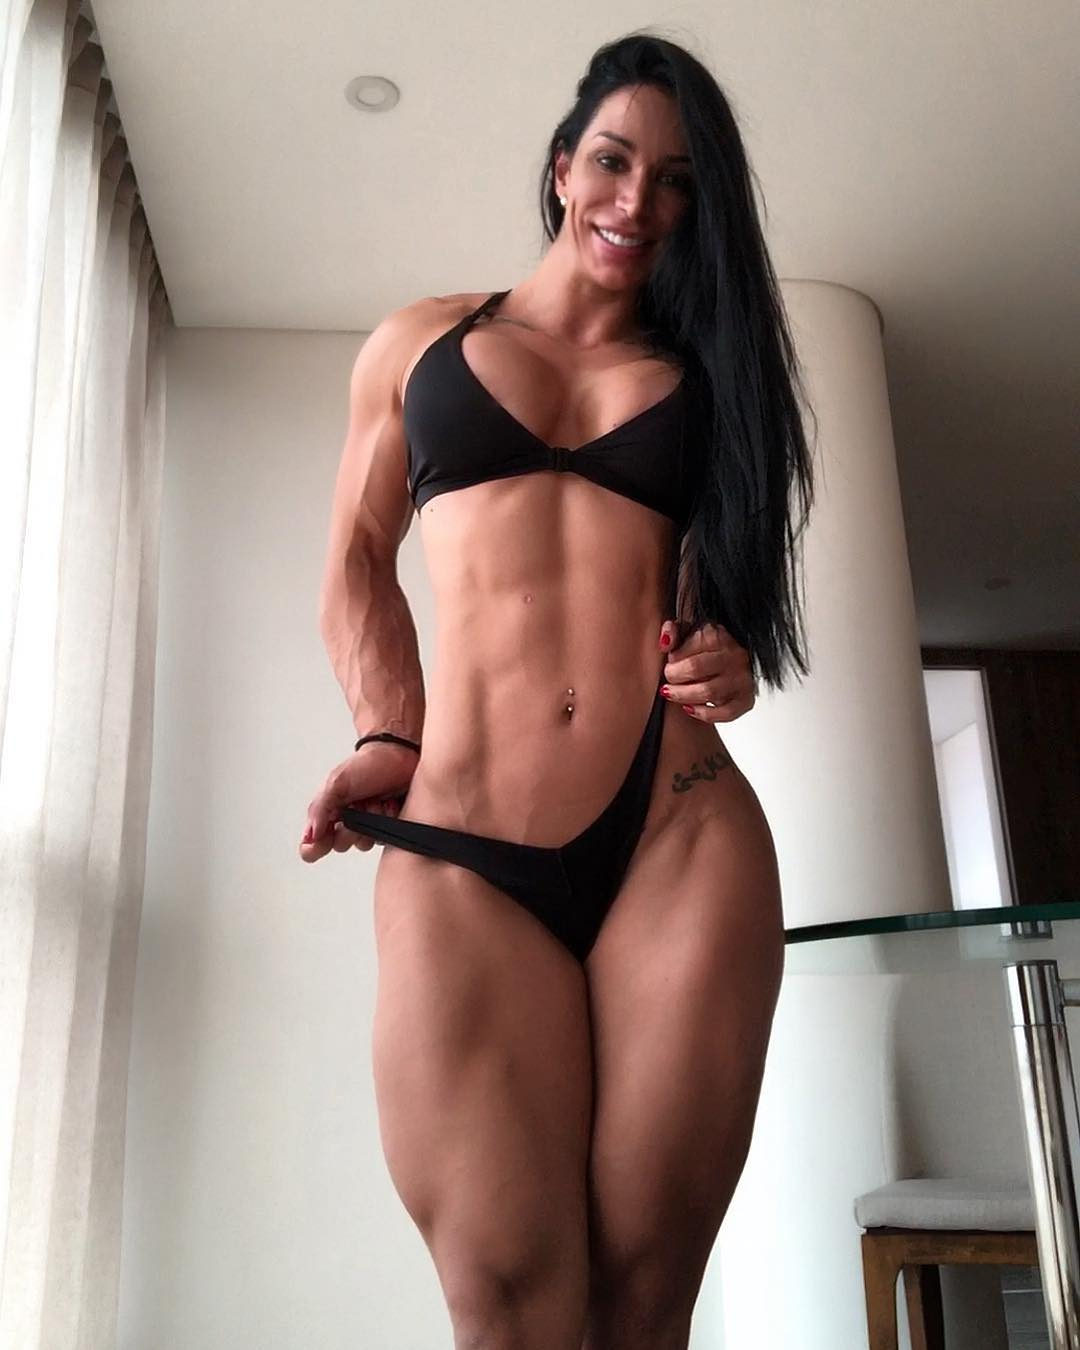 Ana Cozar Nude Workout Video Leaked! photo 20